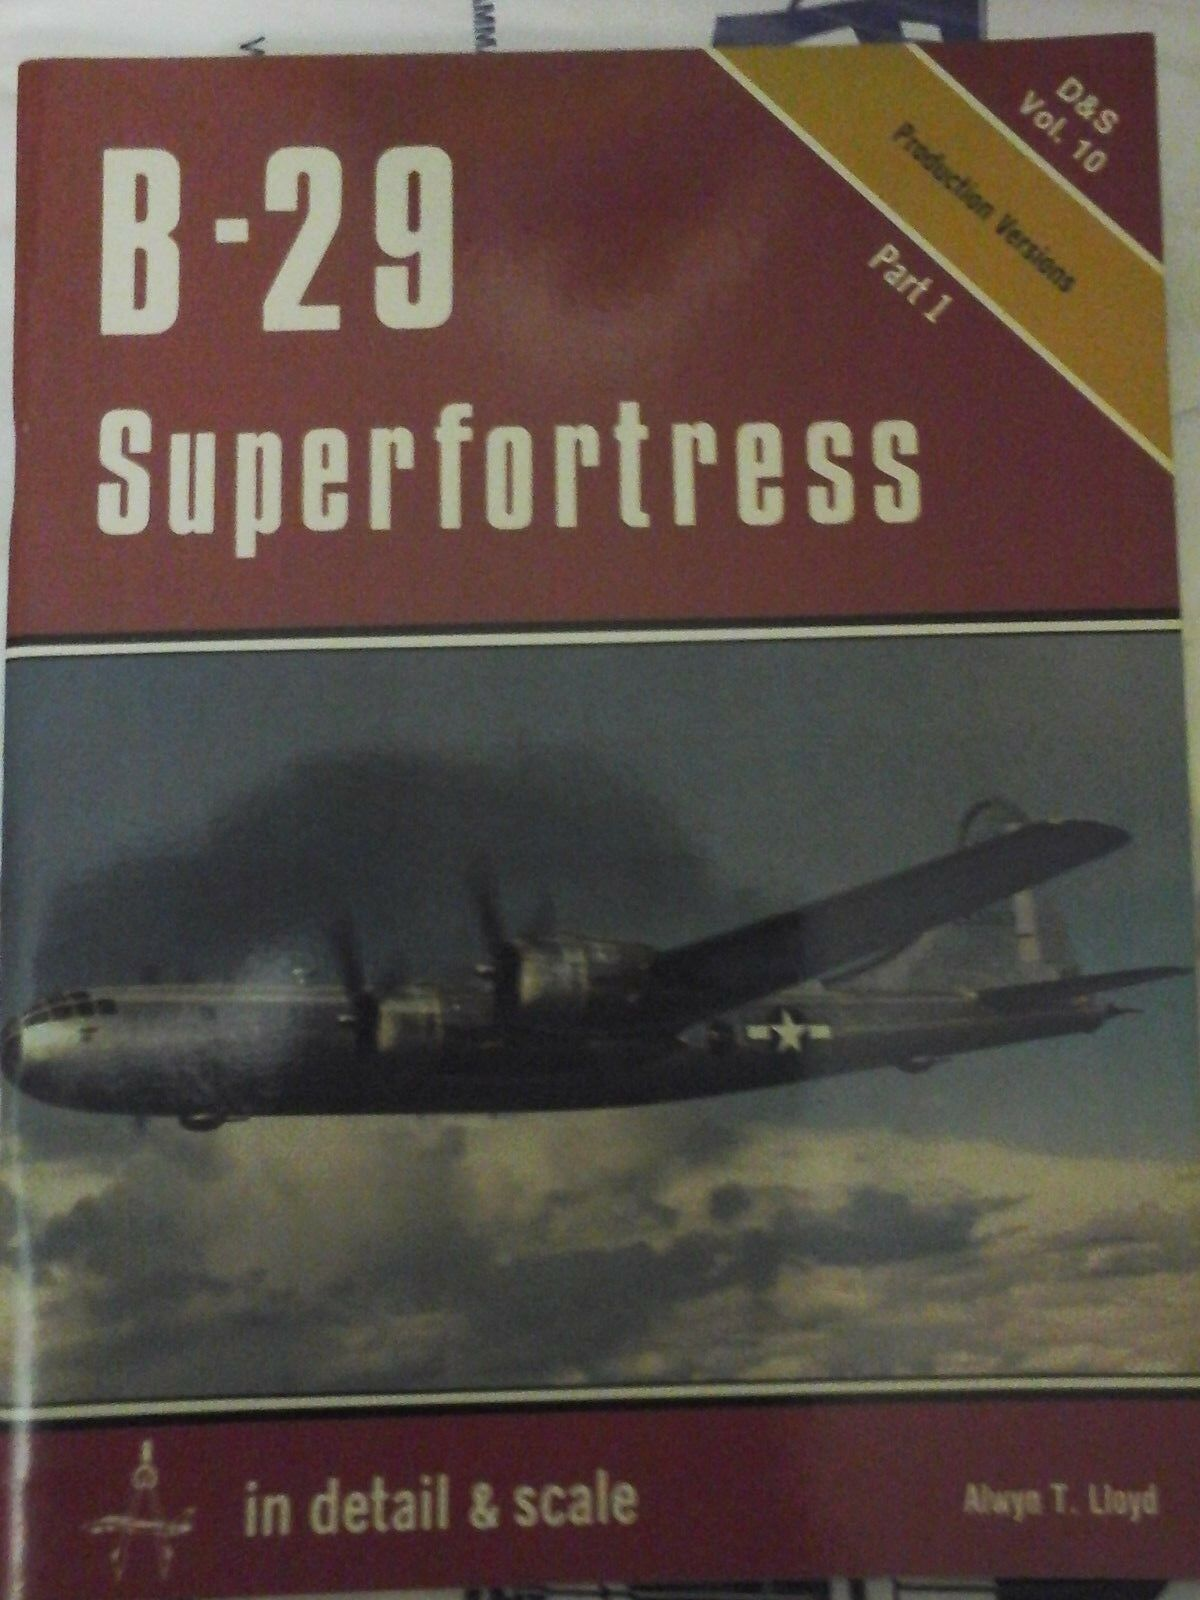 -SQUADRON SIGNAL IN DETAIL & SCALE VOL.10 - B-29 SUPERFORTRESS PART.1 BY BERT KI | Outlet Online Store